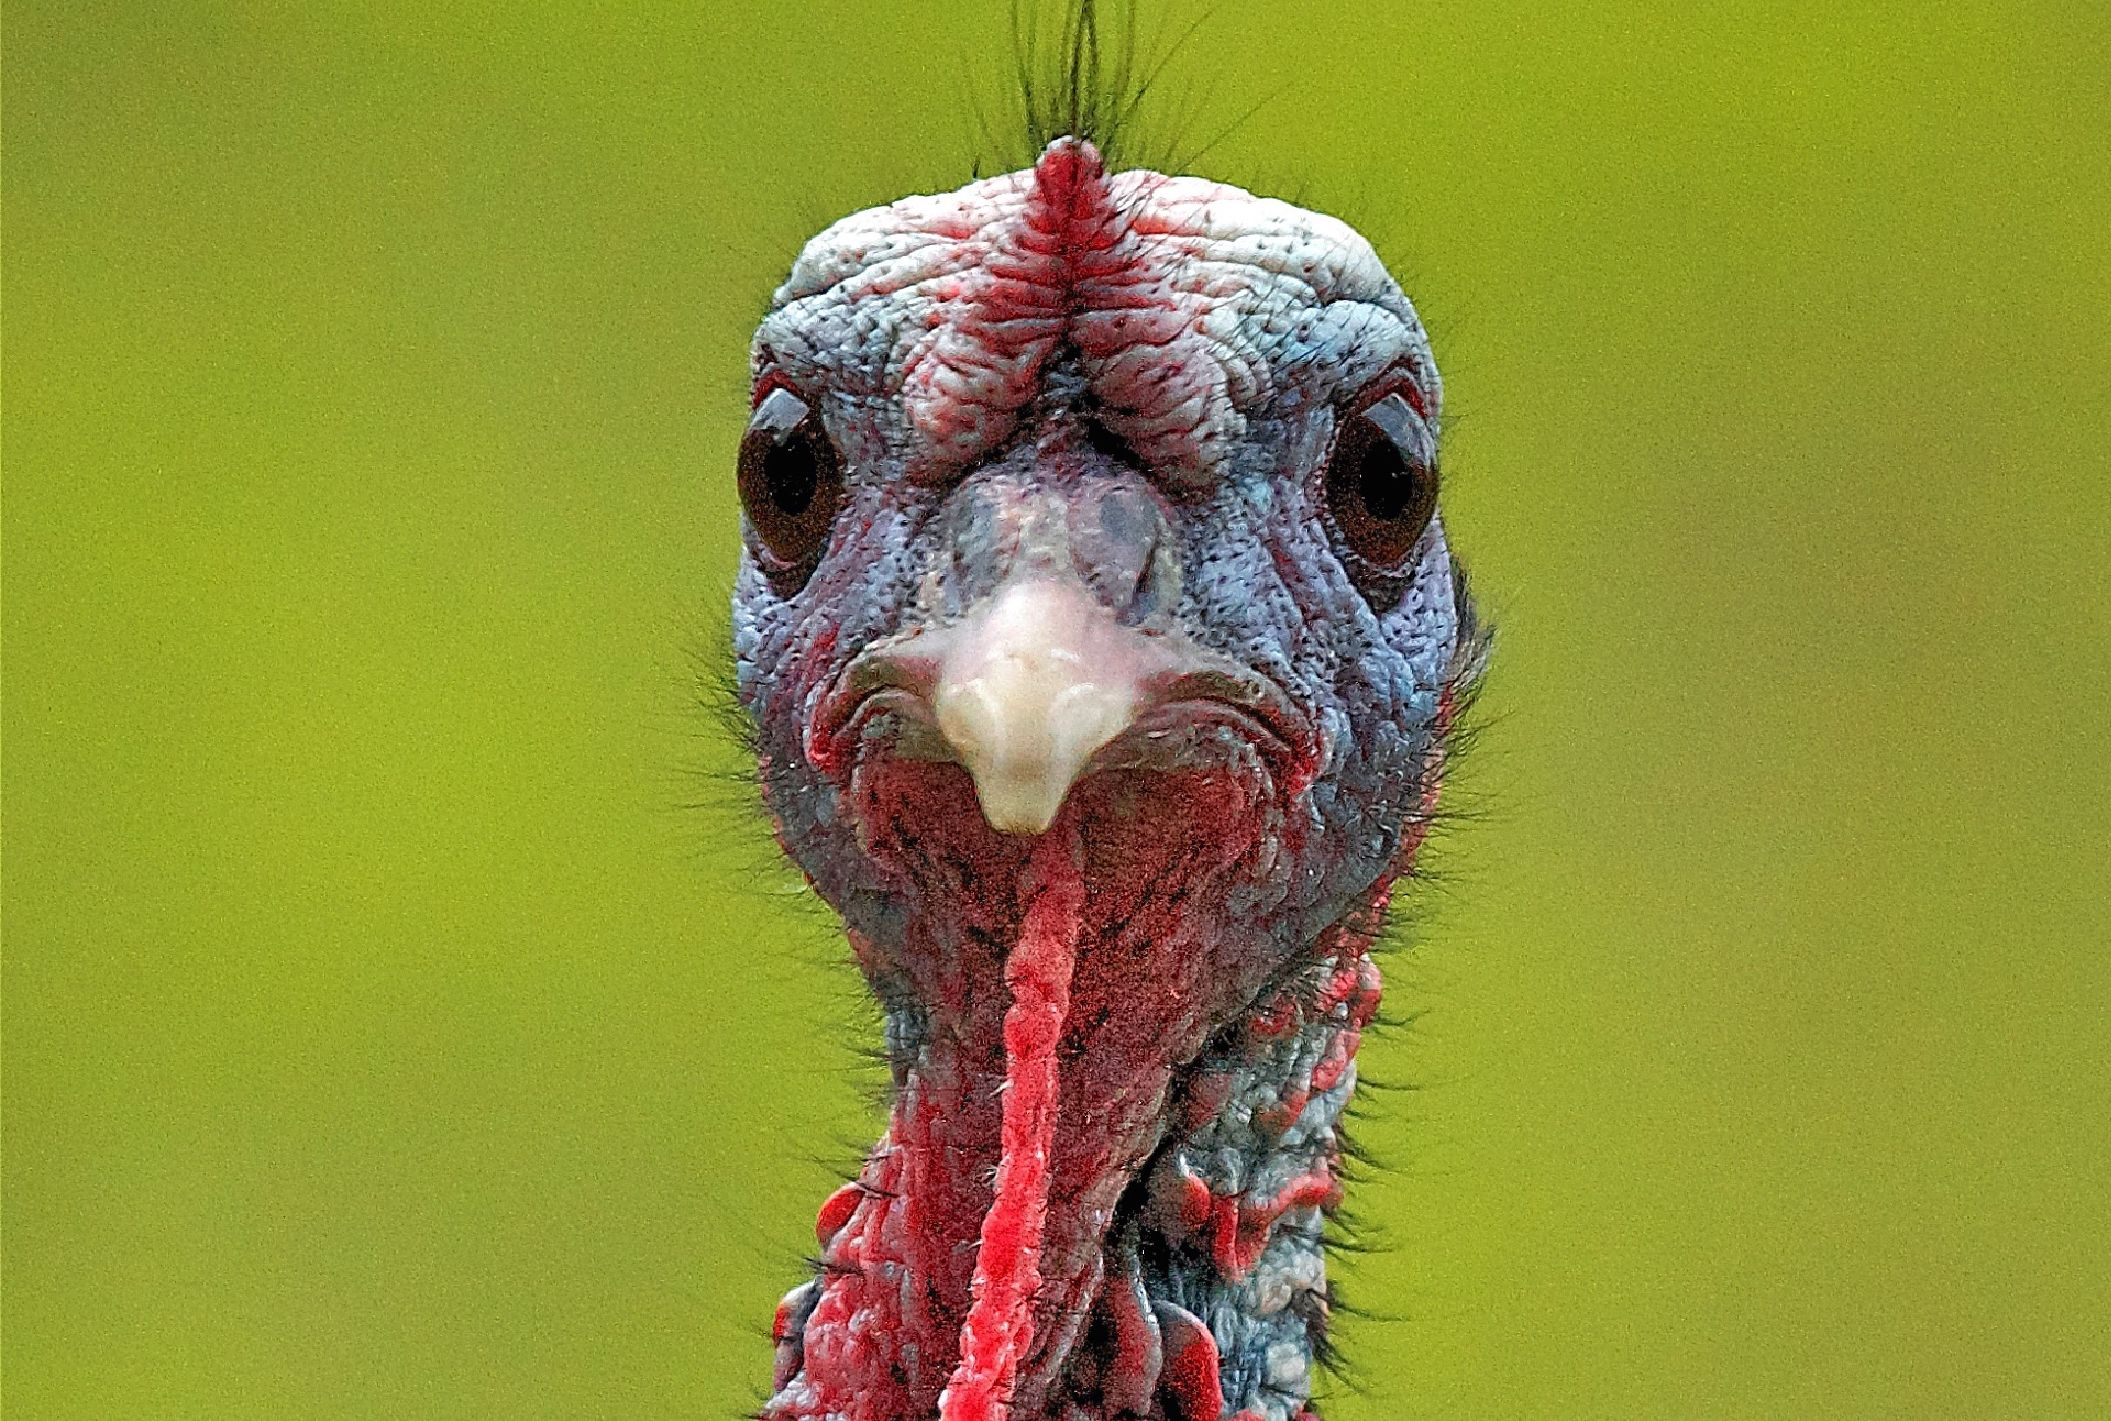 15 facts about turkeys